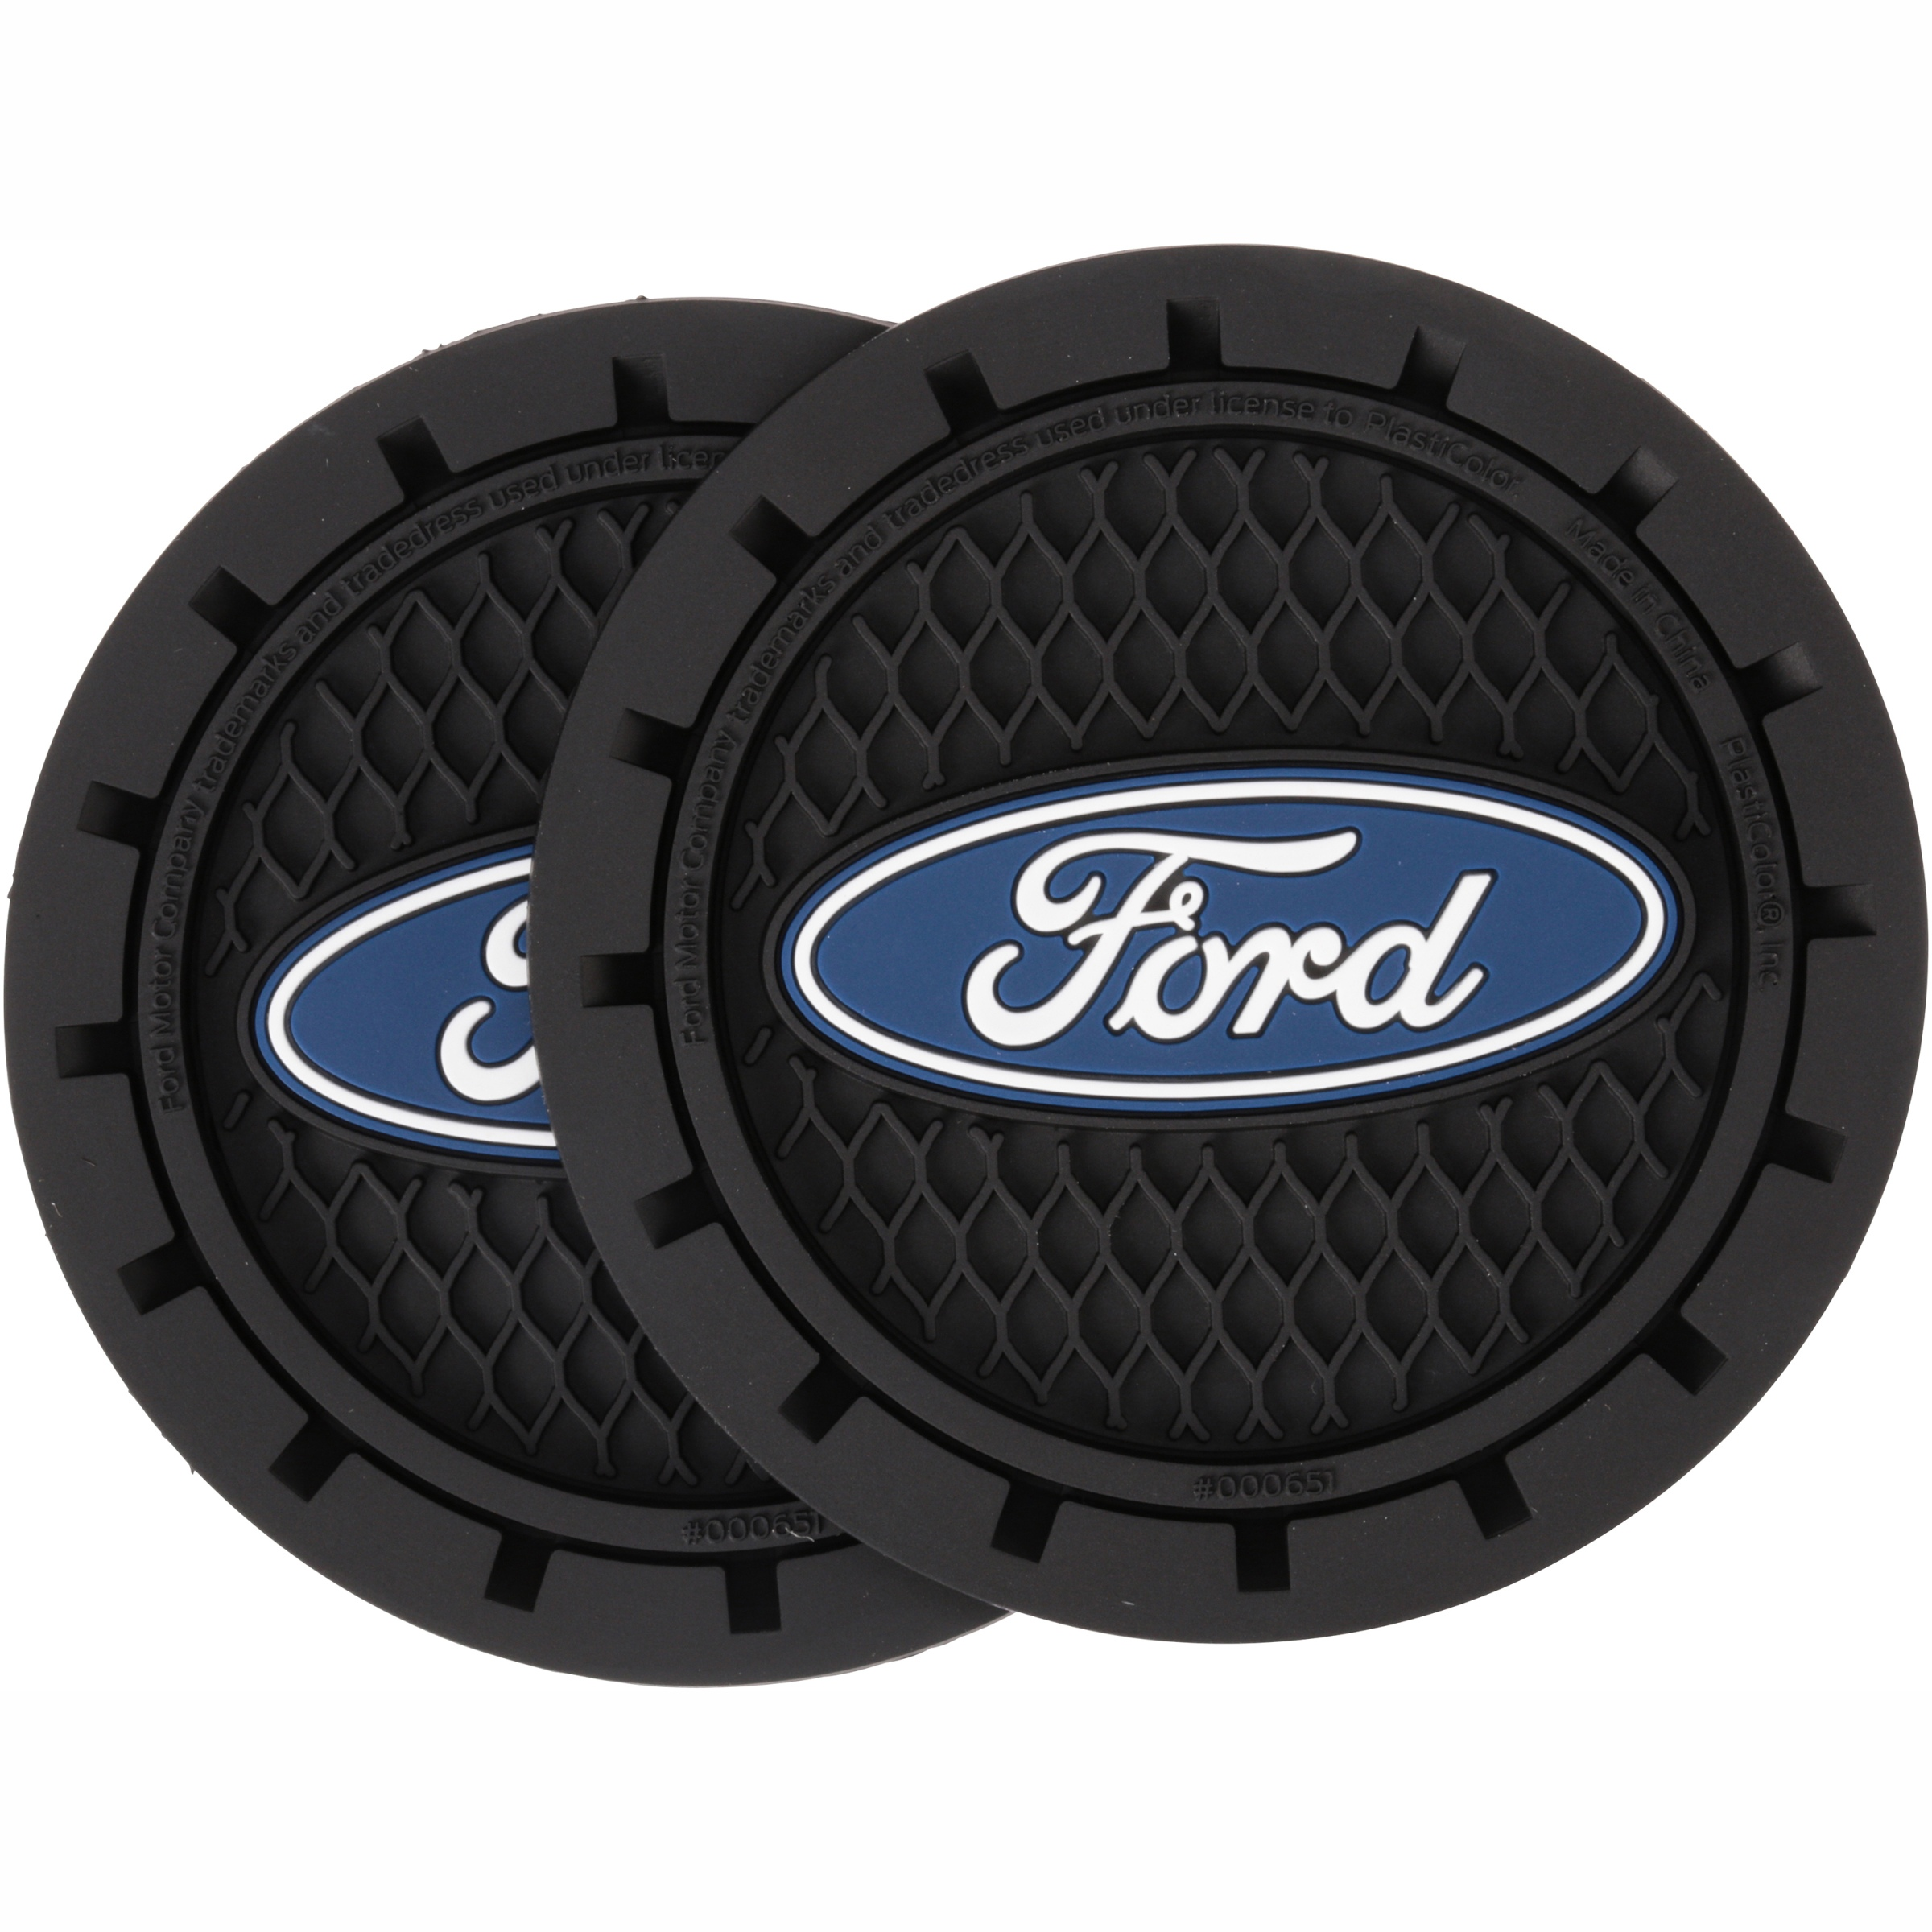 Ford Auto Cup Holder Coasters 2 ct Carded Pack